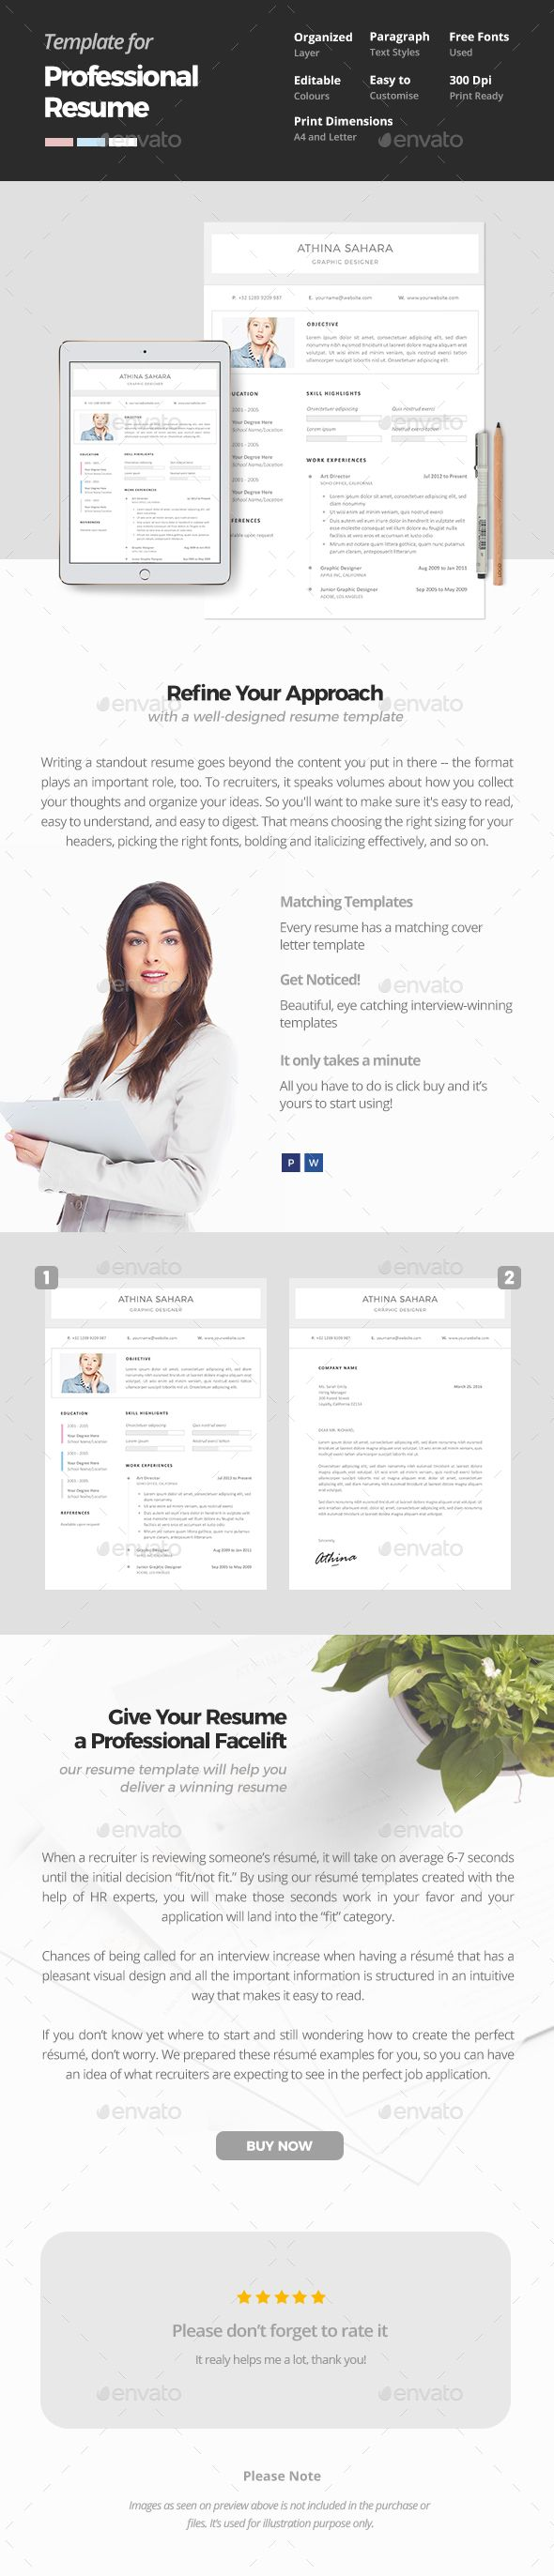 clean and professional resume template proffesional resume templates